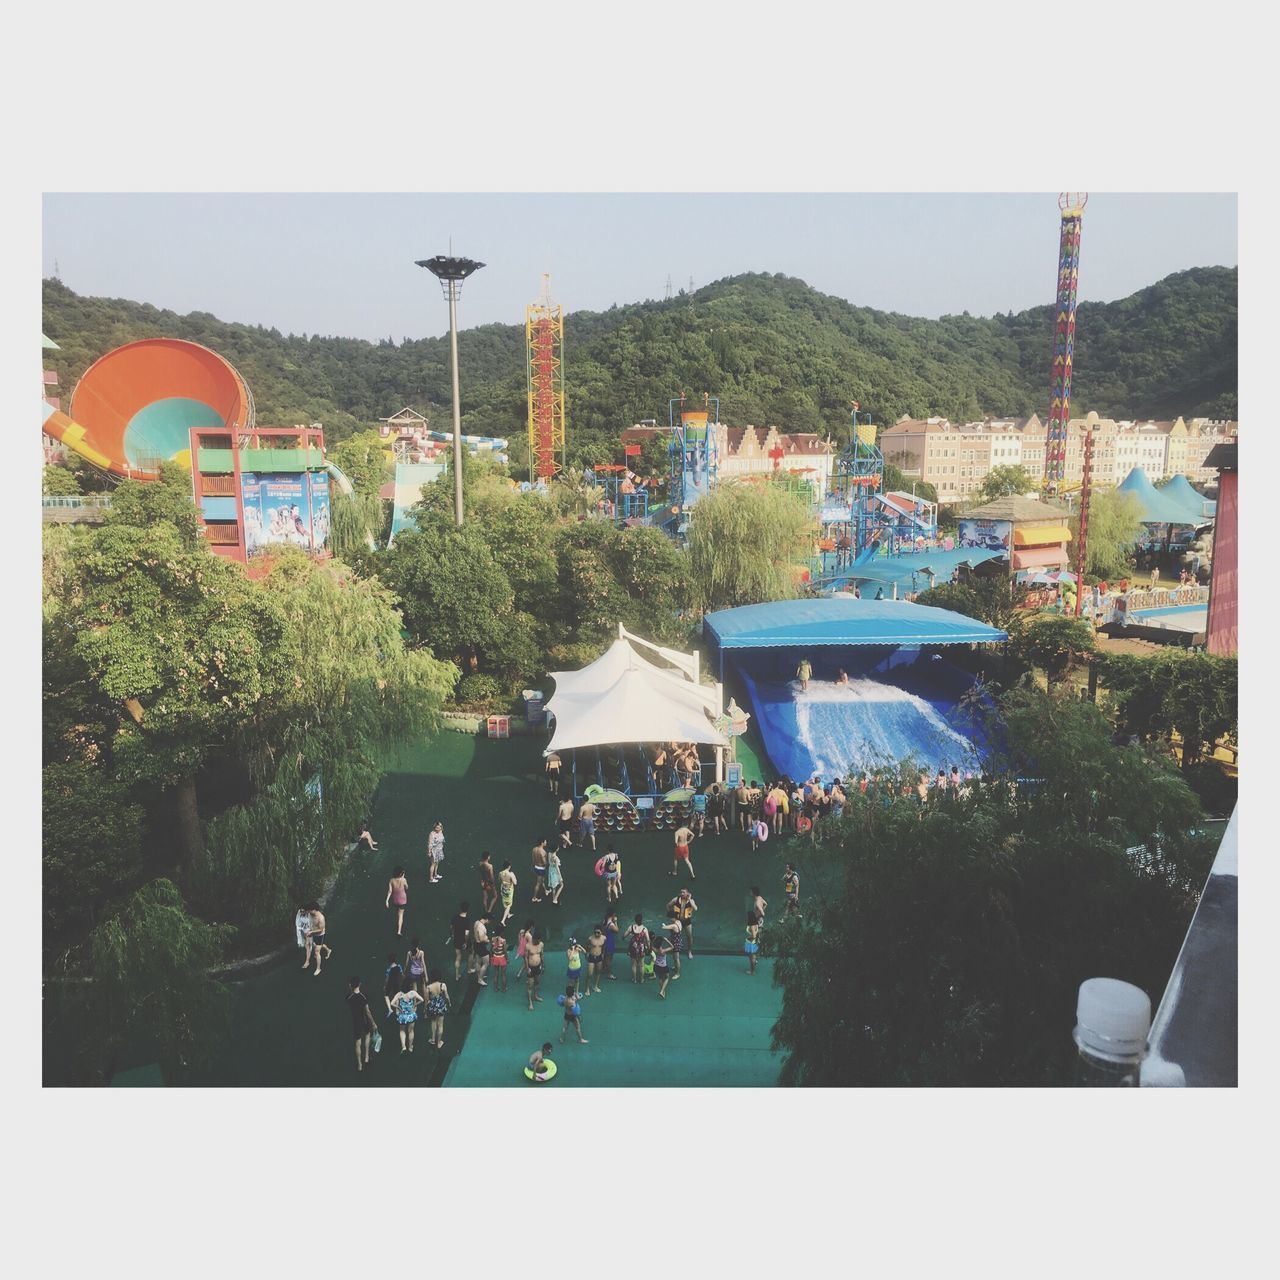 large group of people, enjoyment, water, outdoors, clear sky, tree, architecture, day, swimming pool, real people, crowd, nature, sky, people